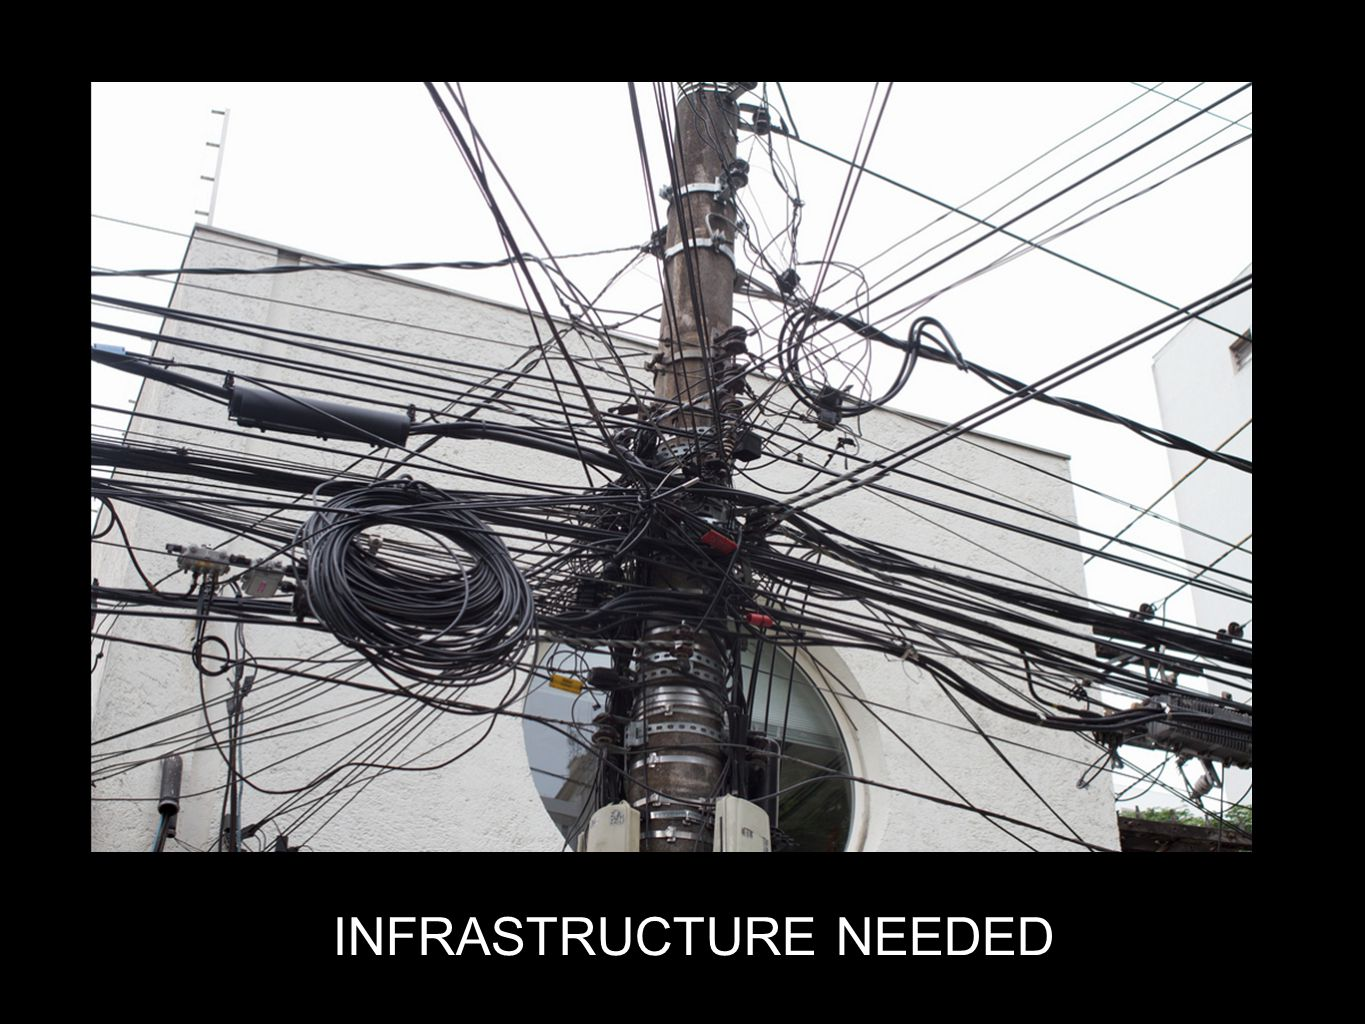 INFRASTRUCTURE NEEDED!